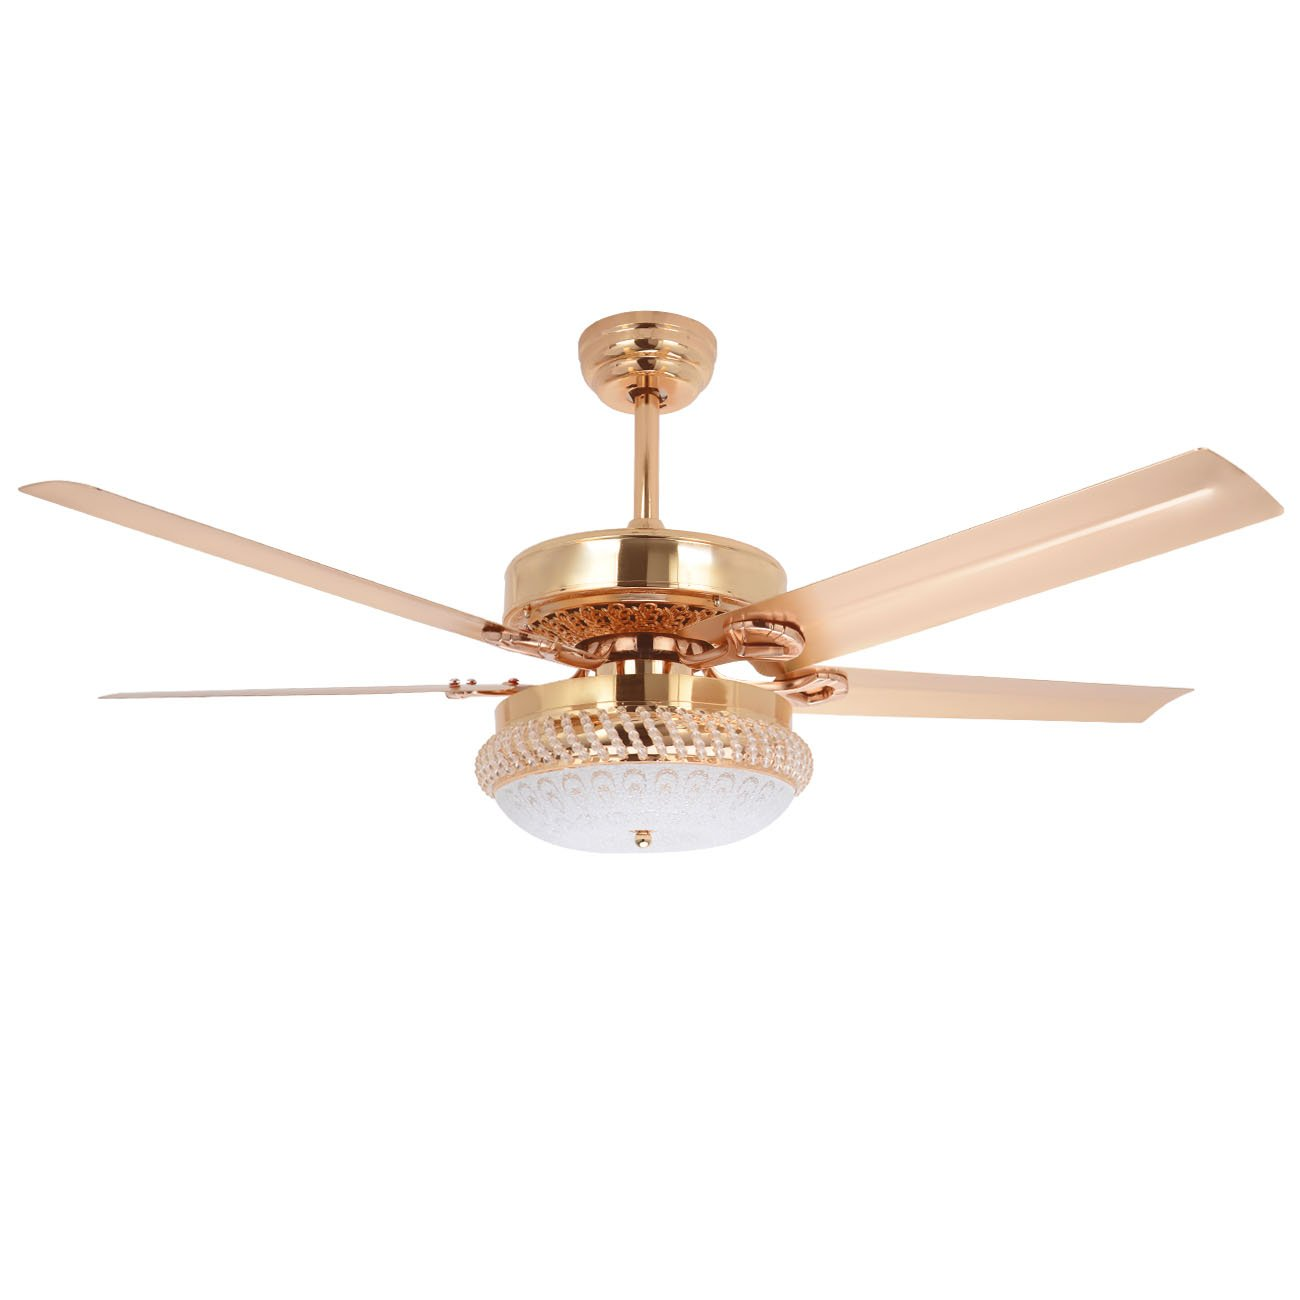 Tropicalfan Metal Led Ceiling Fan With Remote Control 1 Glass Light Cover Home 790996085050 Ebay